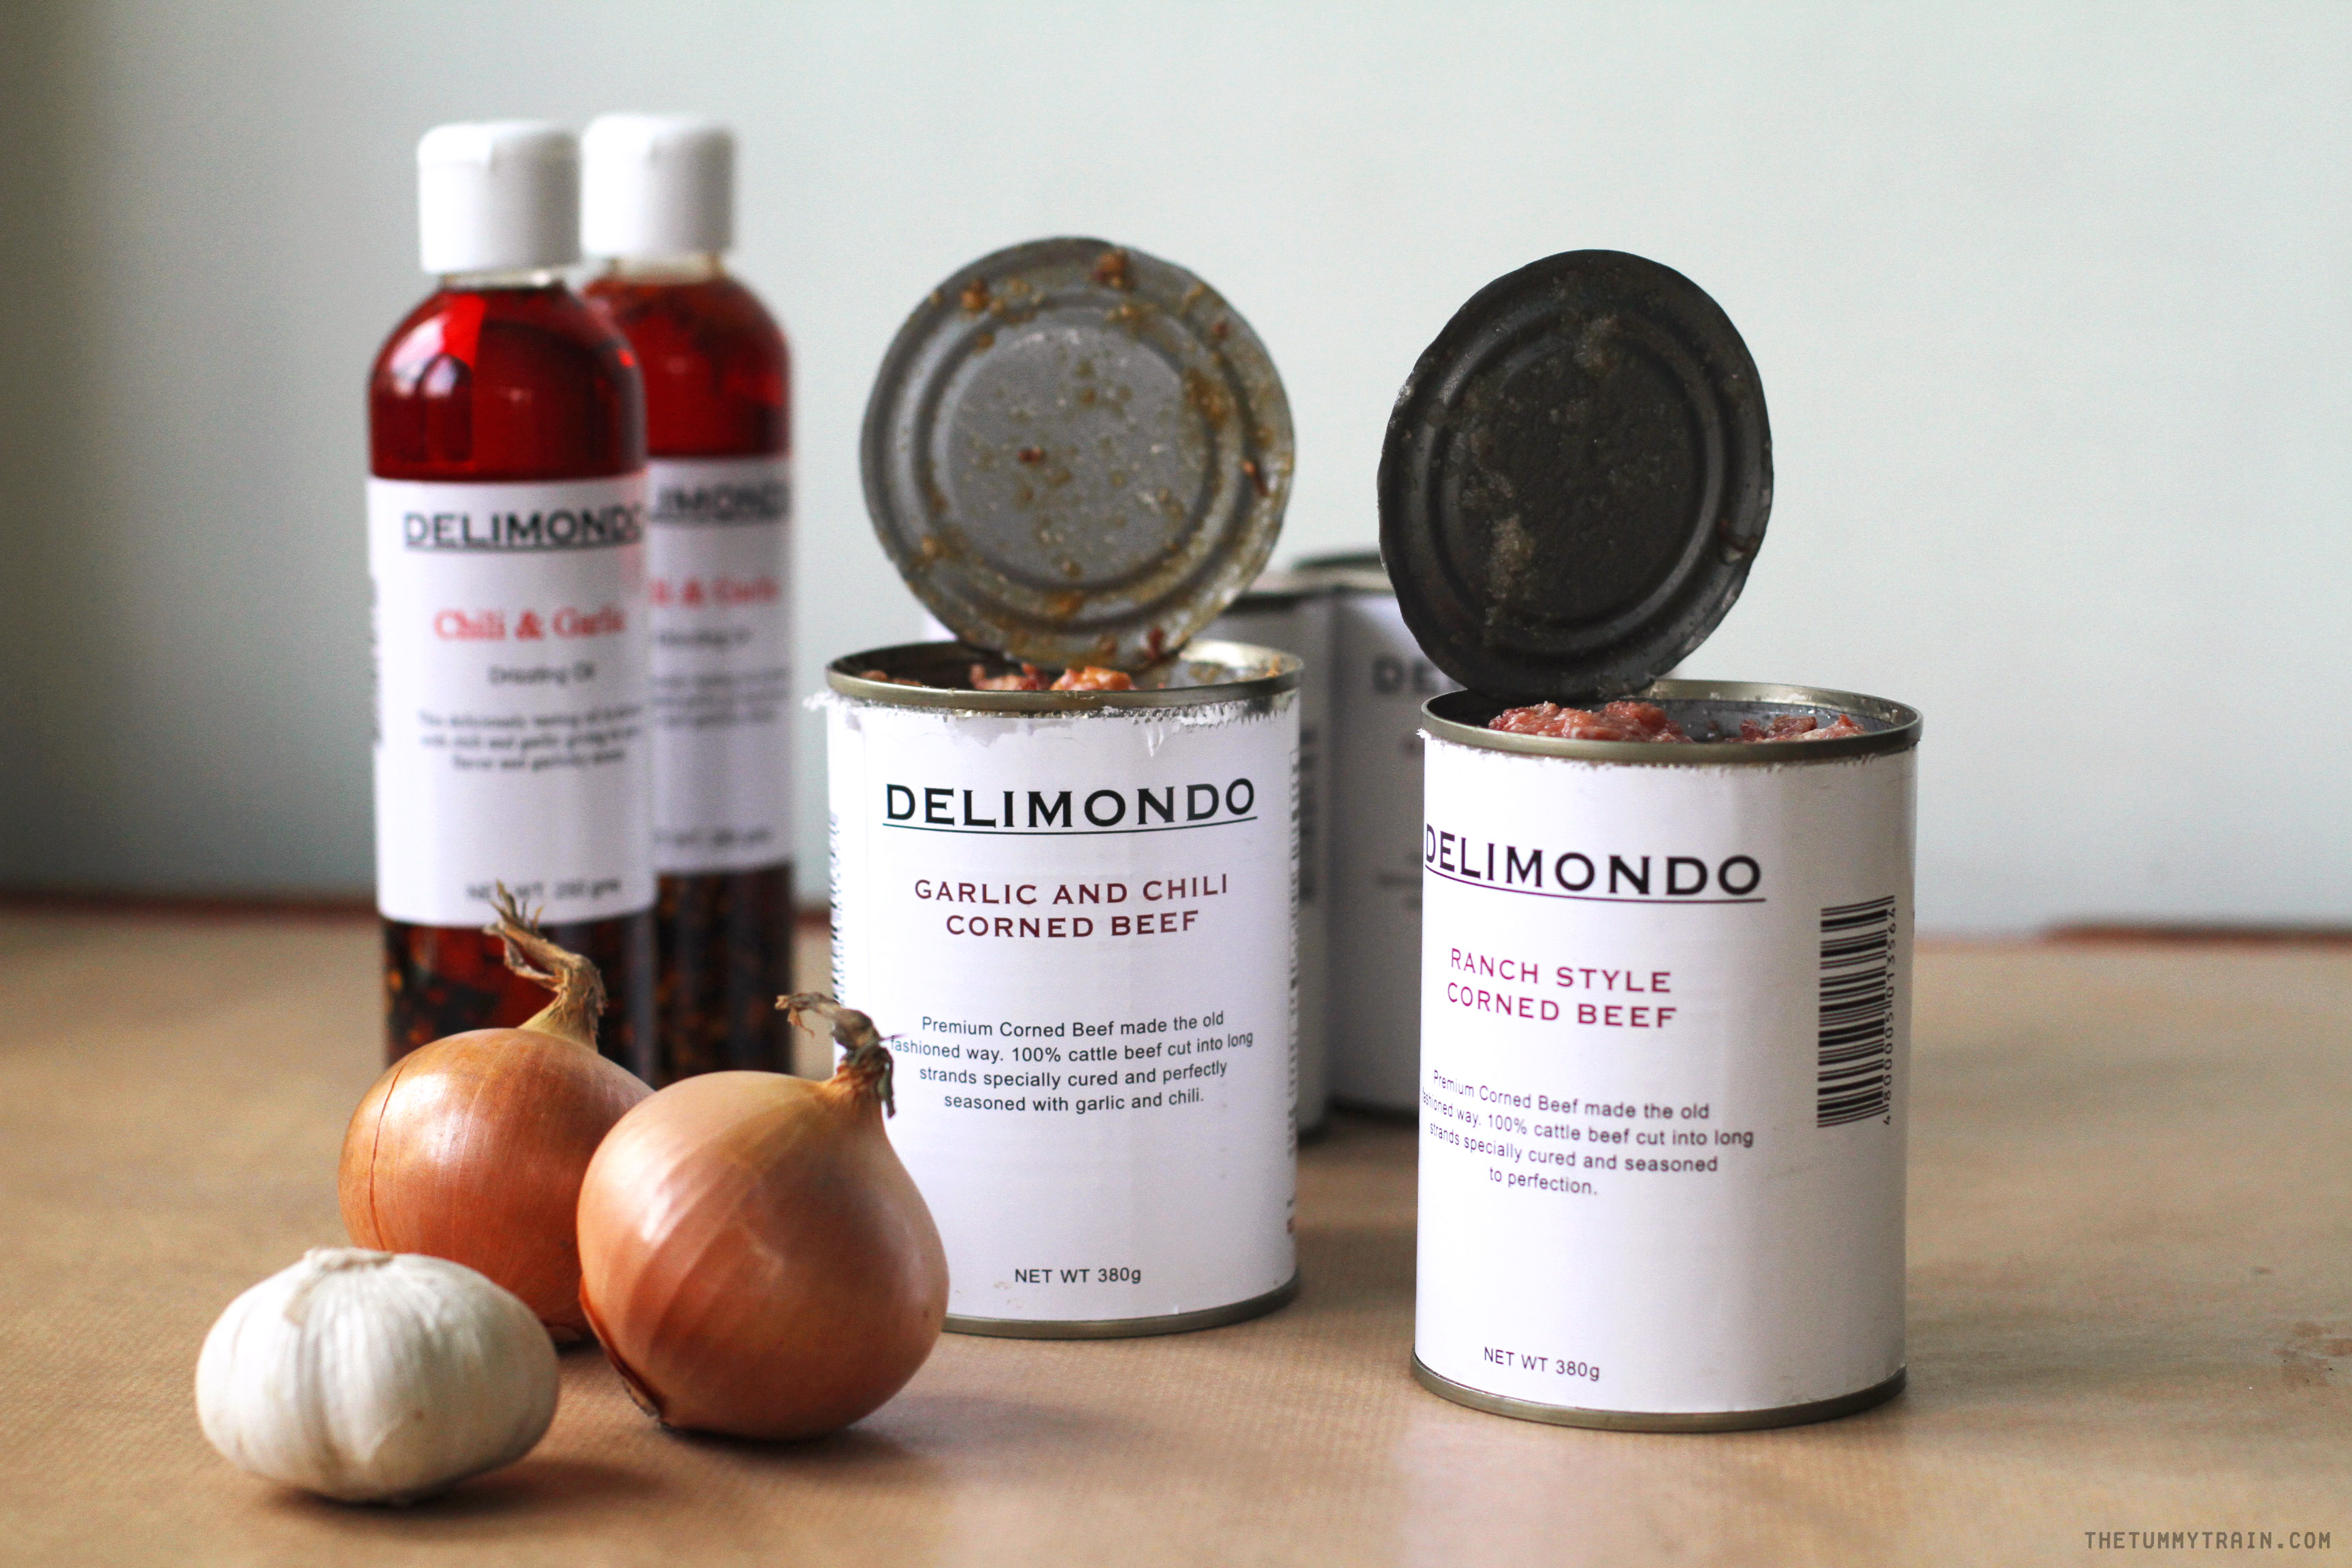 Delimondo 1 - Adding pizzaz to a classic pasta with Delimondo Corned Beef